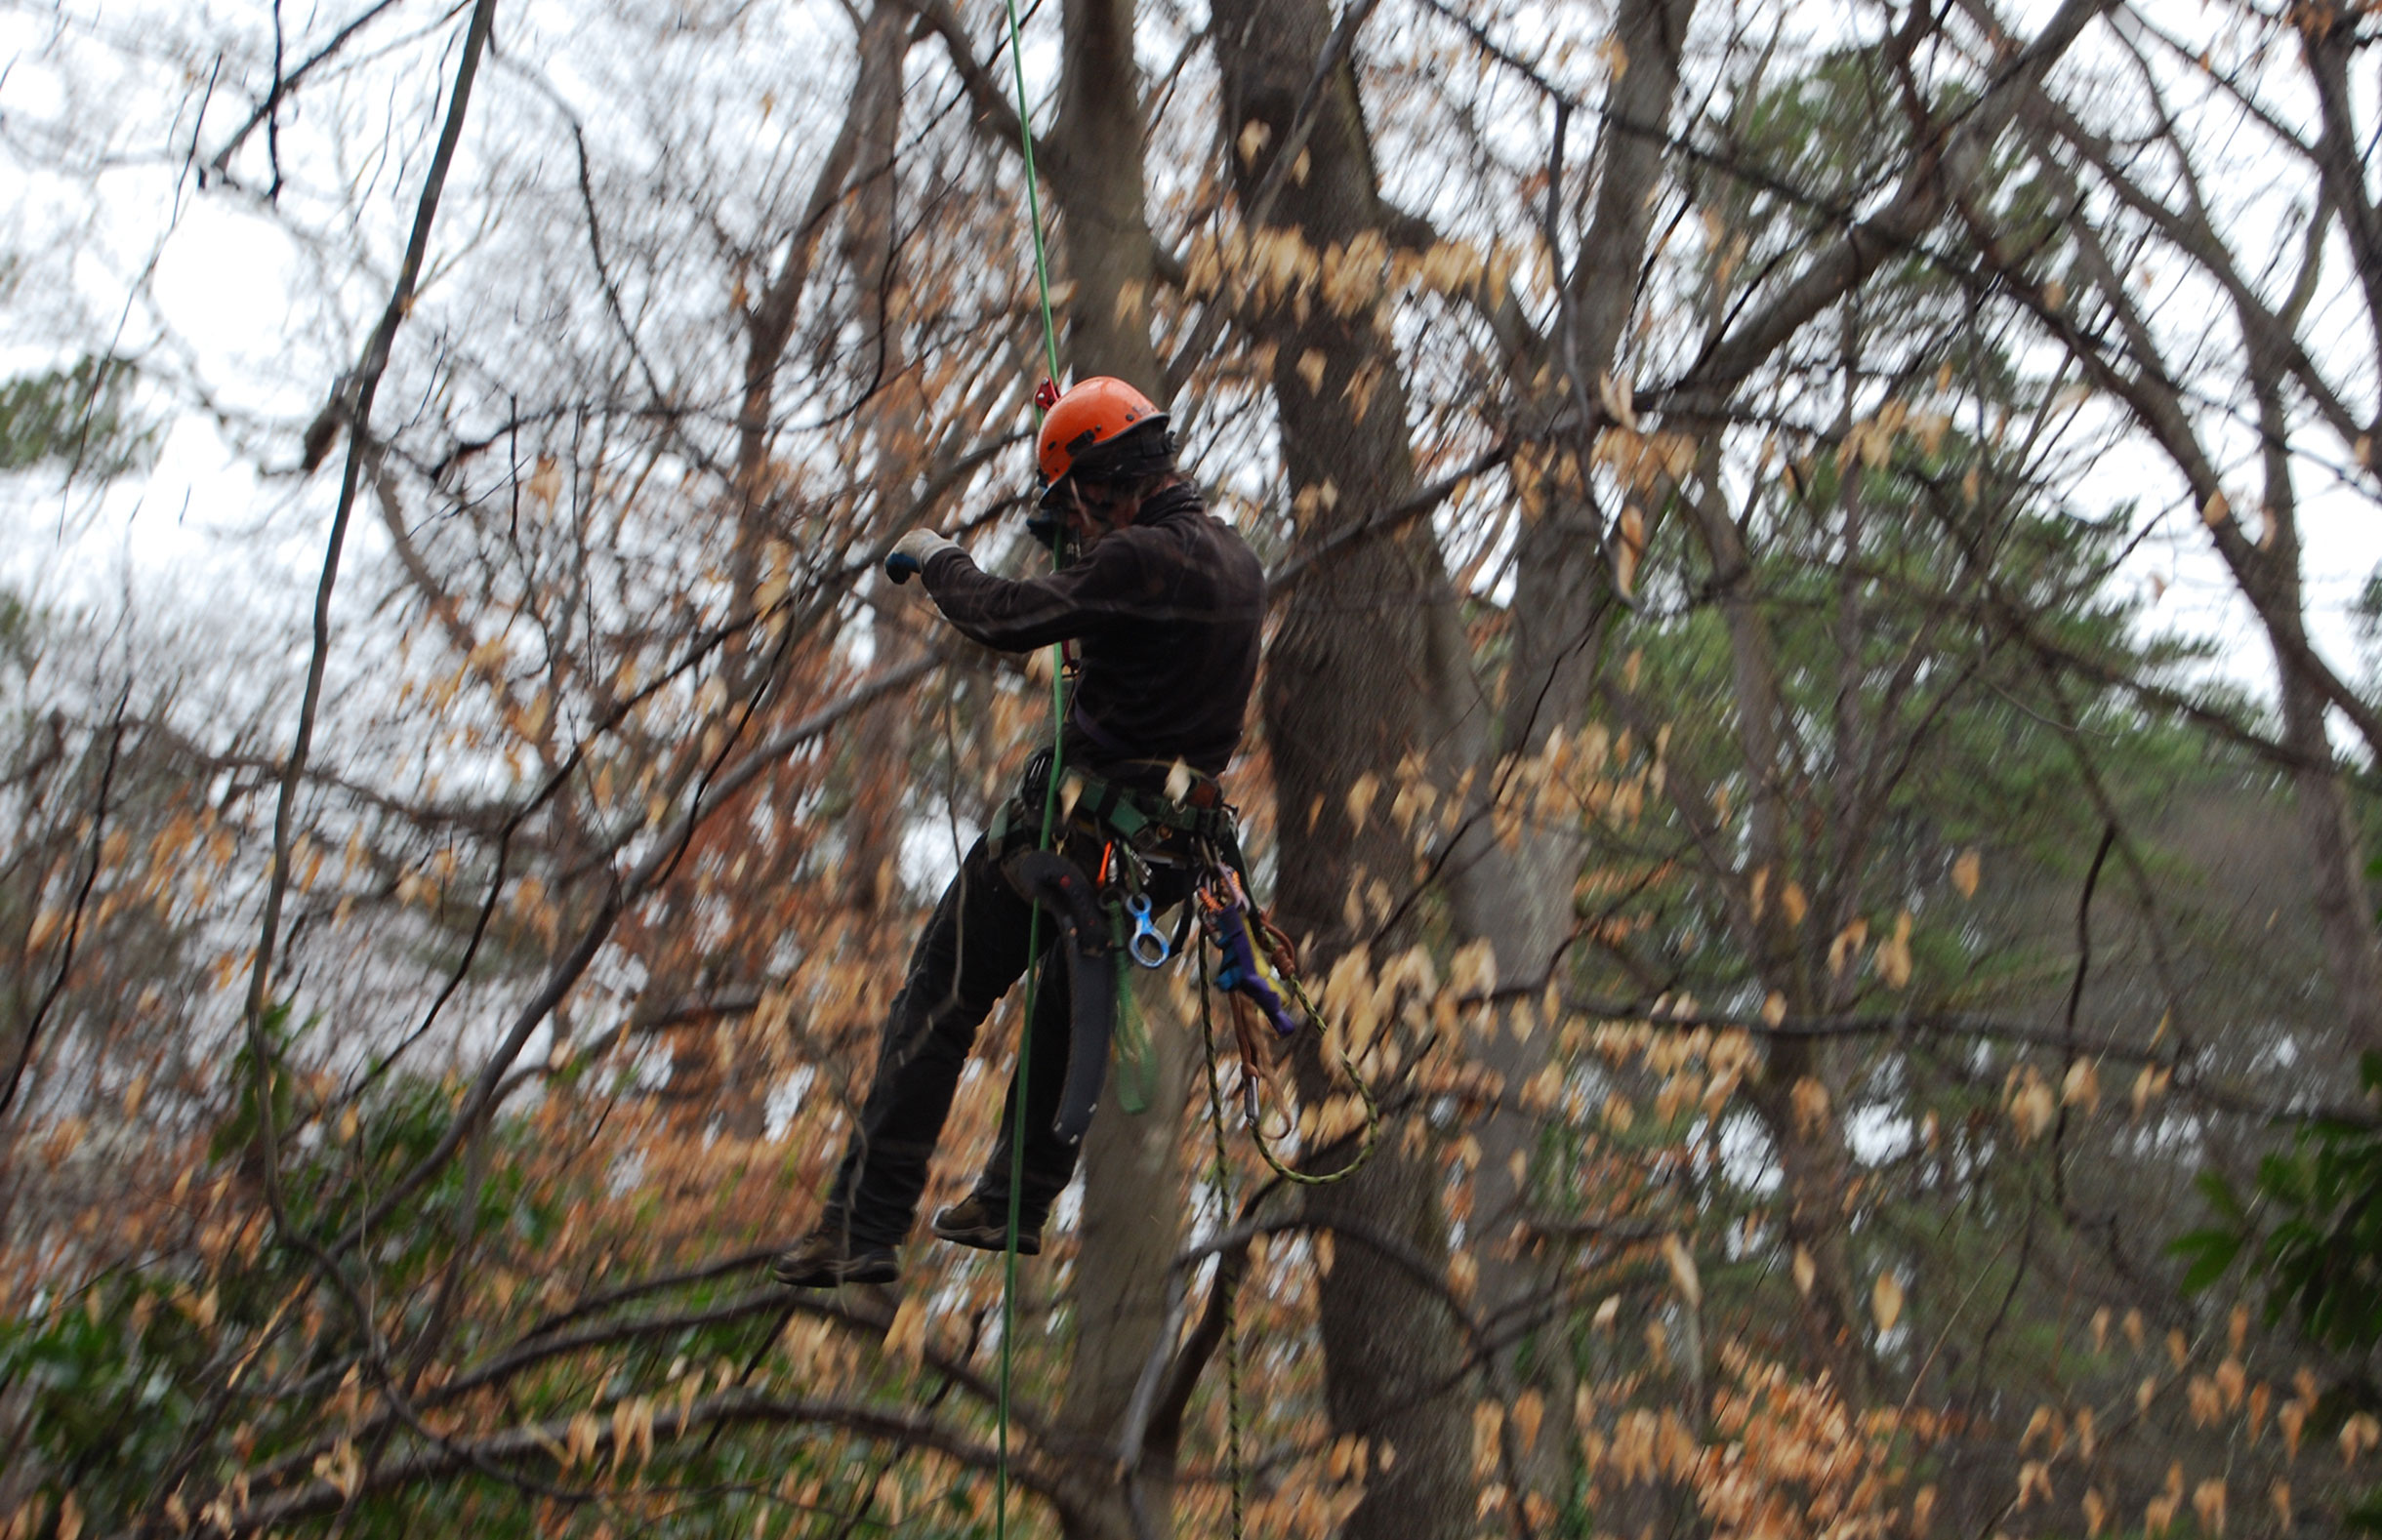 Appleseed Tree Service